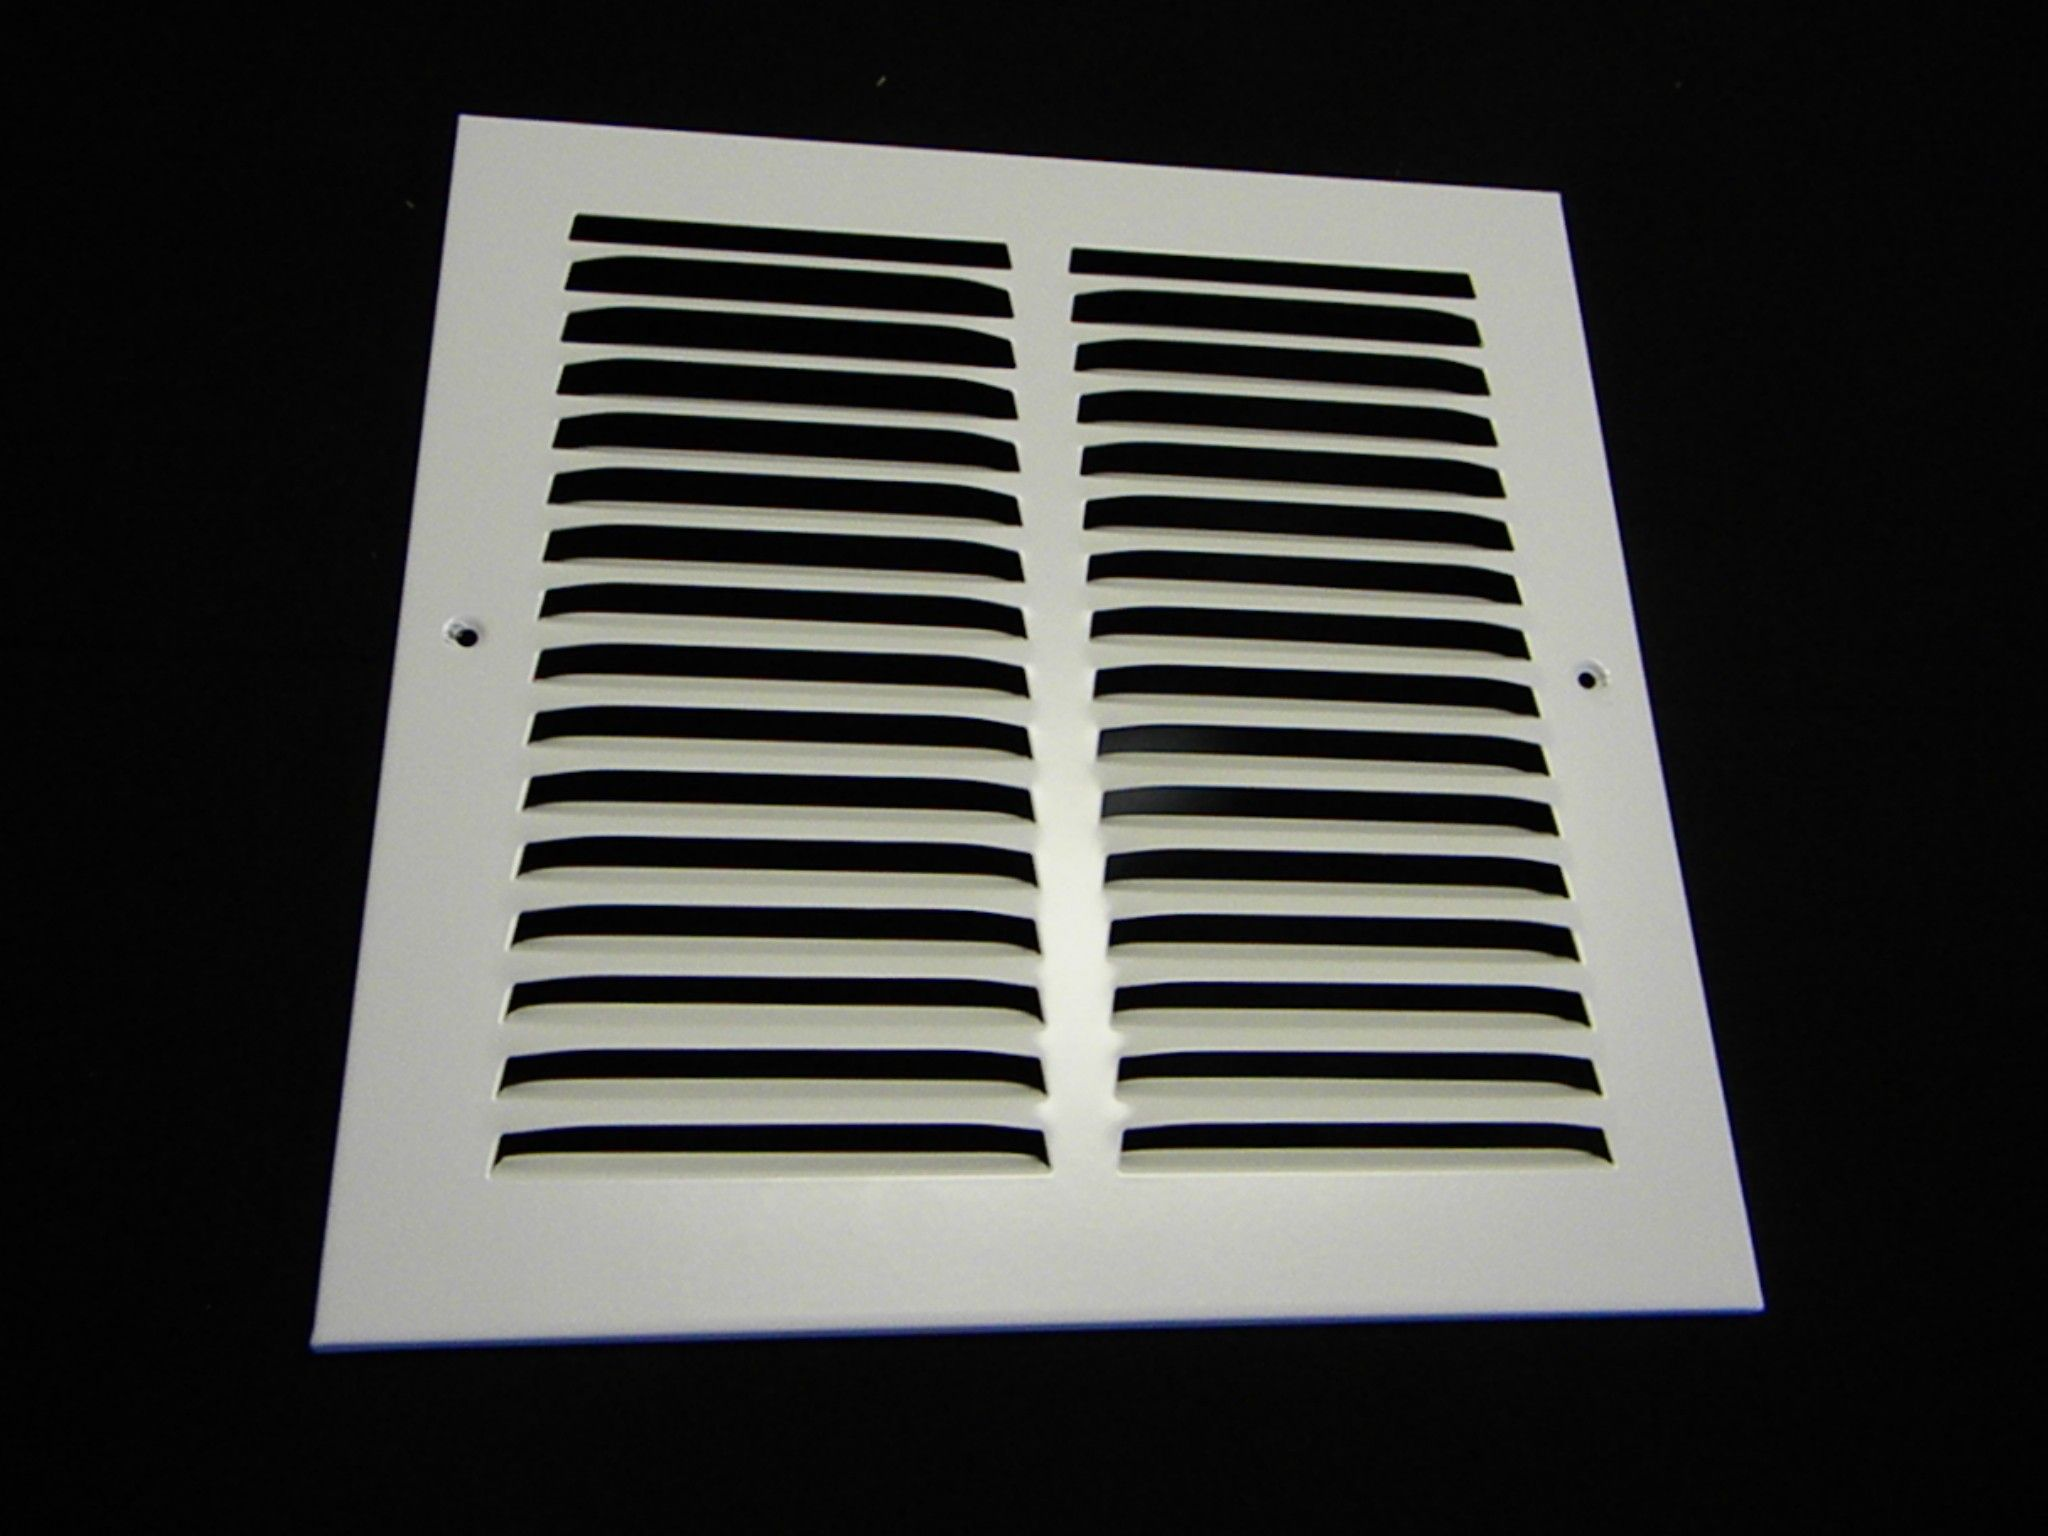 18x18 Return Stamped Grille